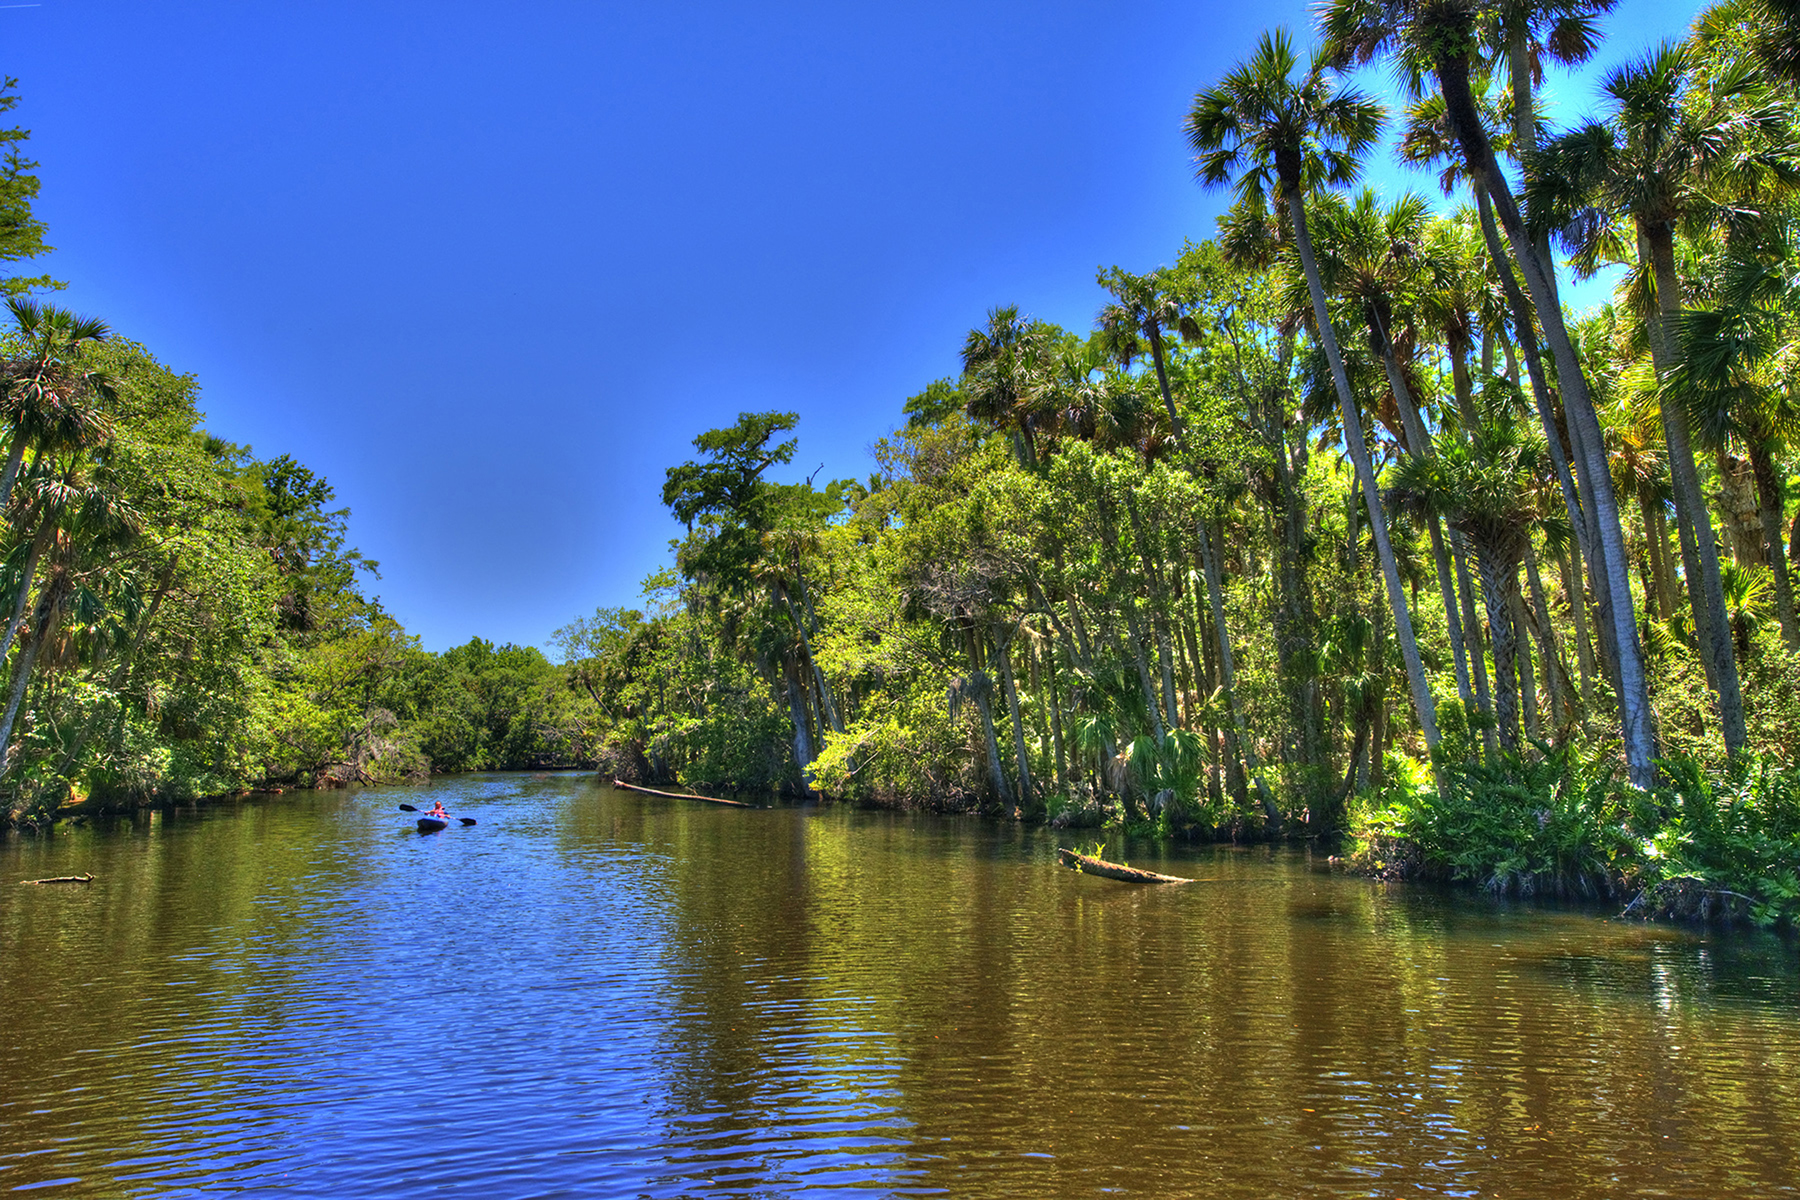 Additional photo for property listing at 1785 Taylor Rd , 3 lots, Port Orange, FL 32128 1785  Taylor Rd 3 lots,  Port Orange, Florida 32128 United States